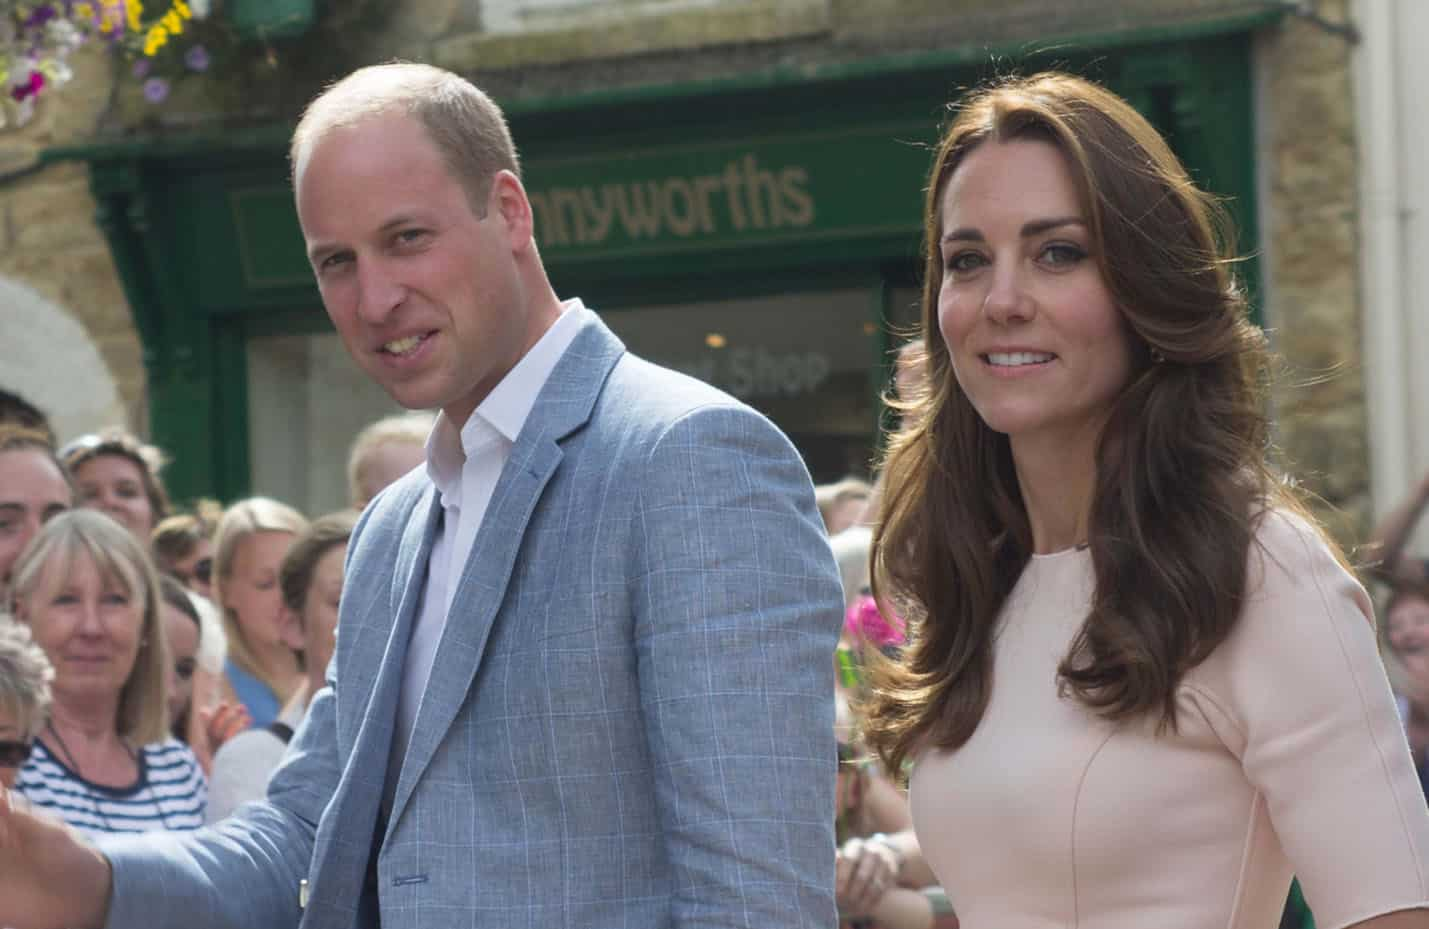 Prinz William und Herzogin Kate - The Duke and Duchess of Cambridge Visit Truro Cornwall on September 1, 2016